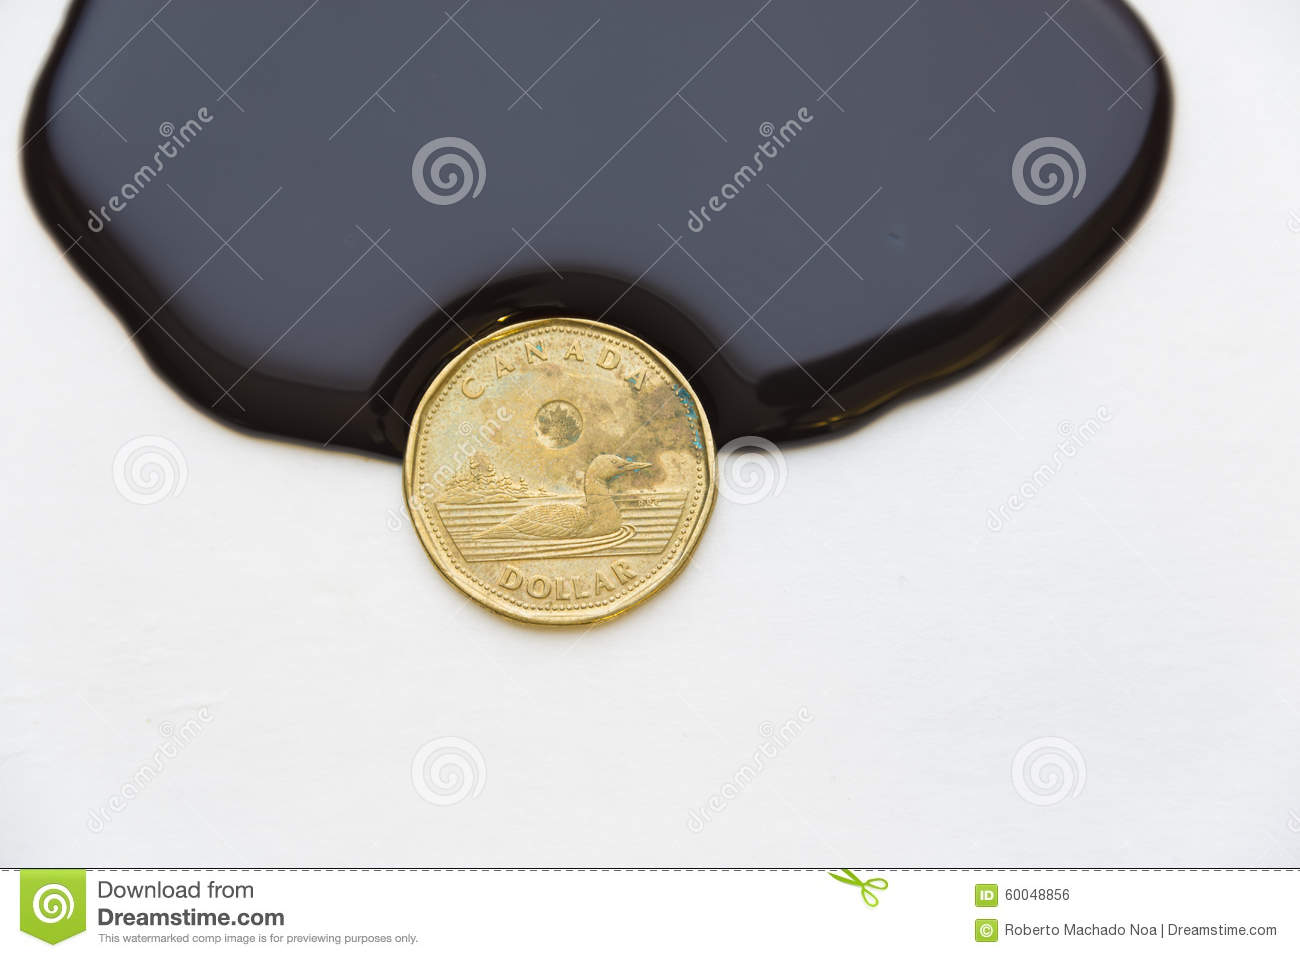 how to buy petro coins